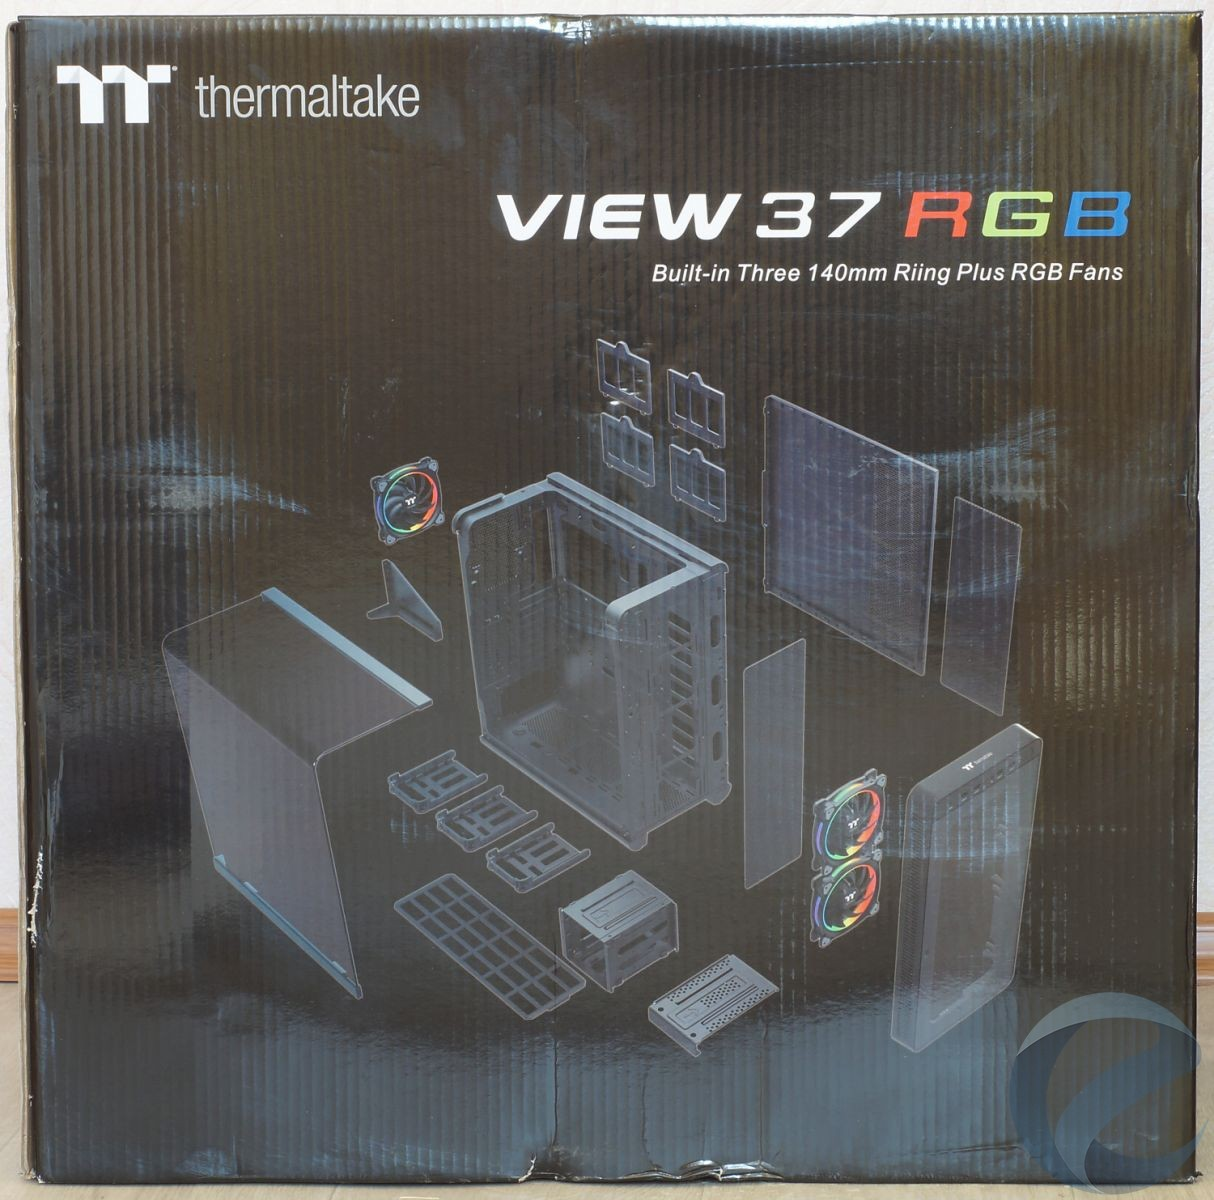 Упаковка и комплектация Mid-Tower корпуса Thermaltake View 37 RGB Edition